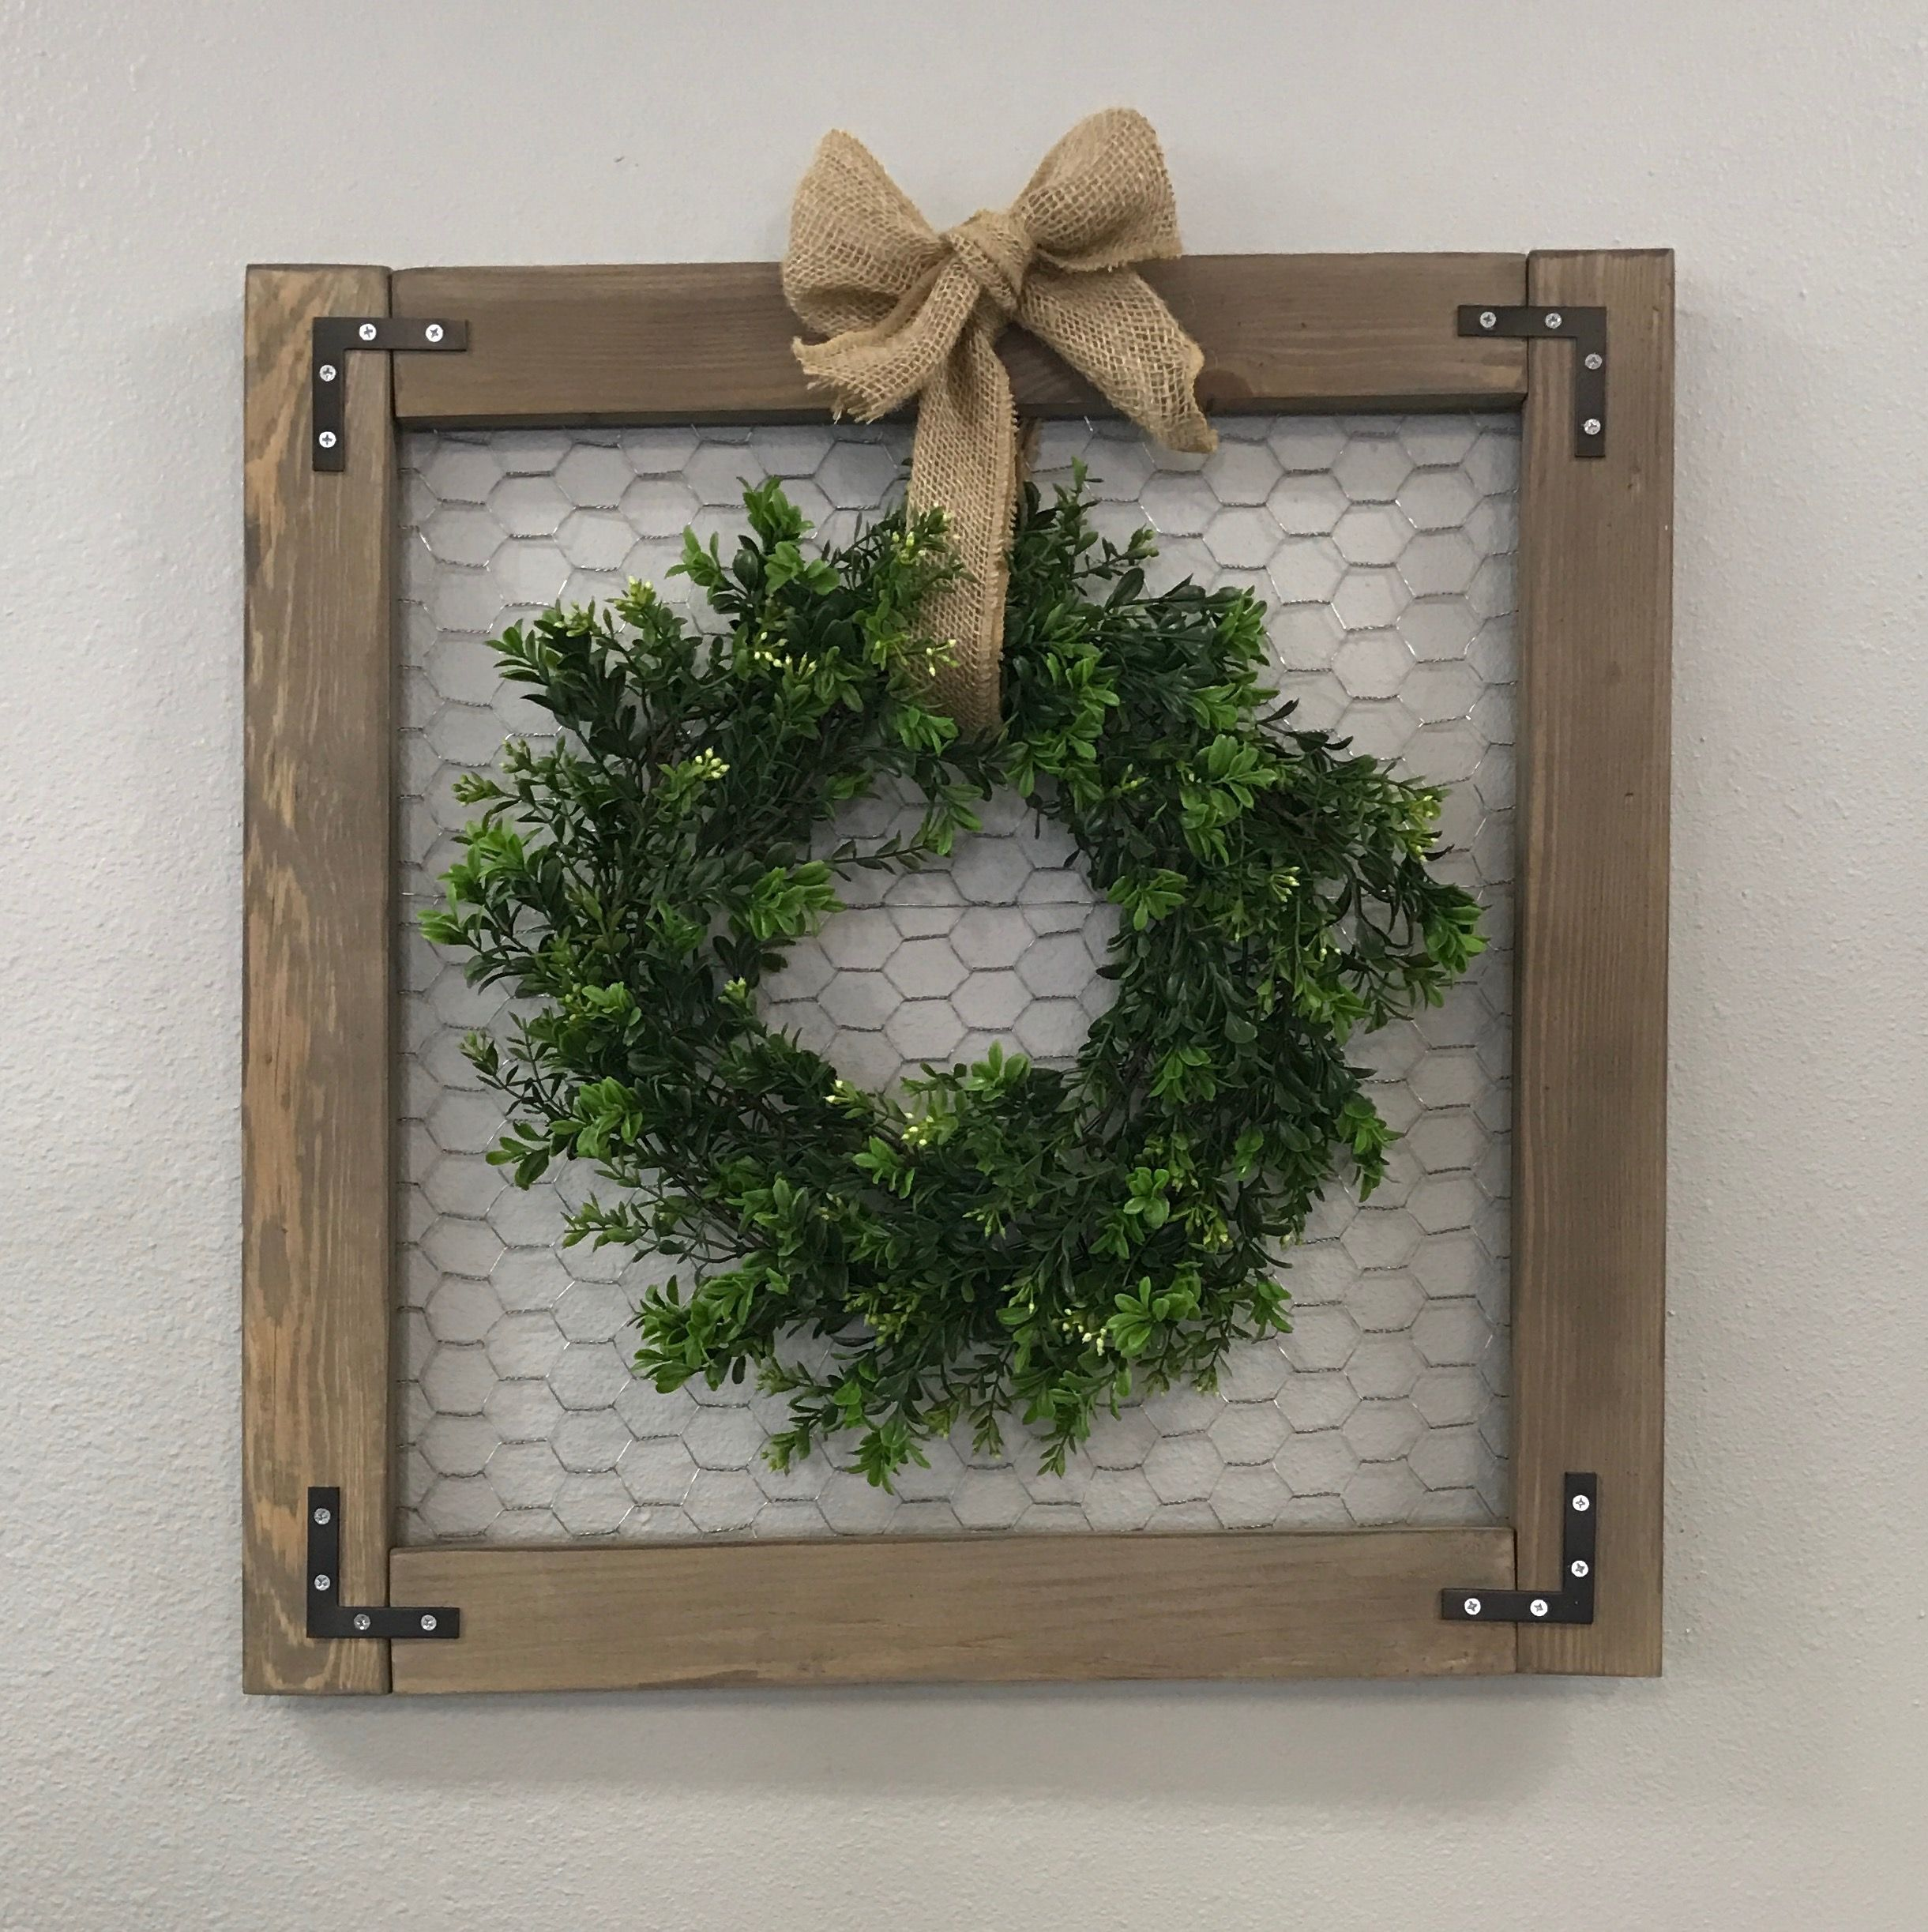 Rustic Chicken Wire Frame w/ Wreath 4/14 | Wall Art/Gallery ...